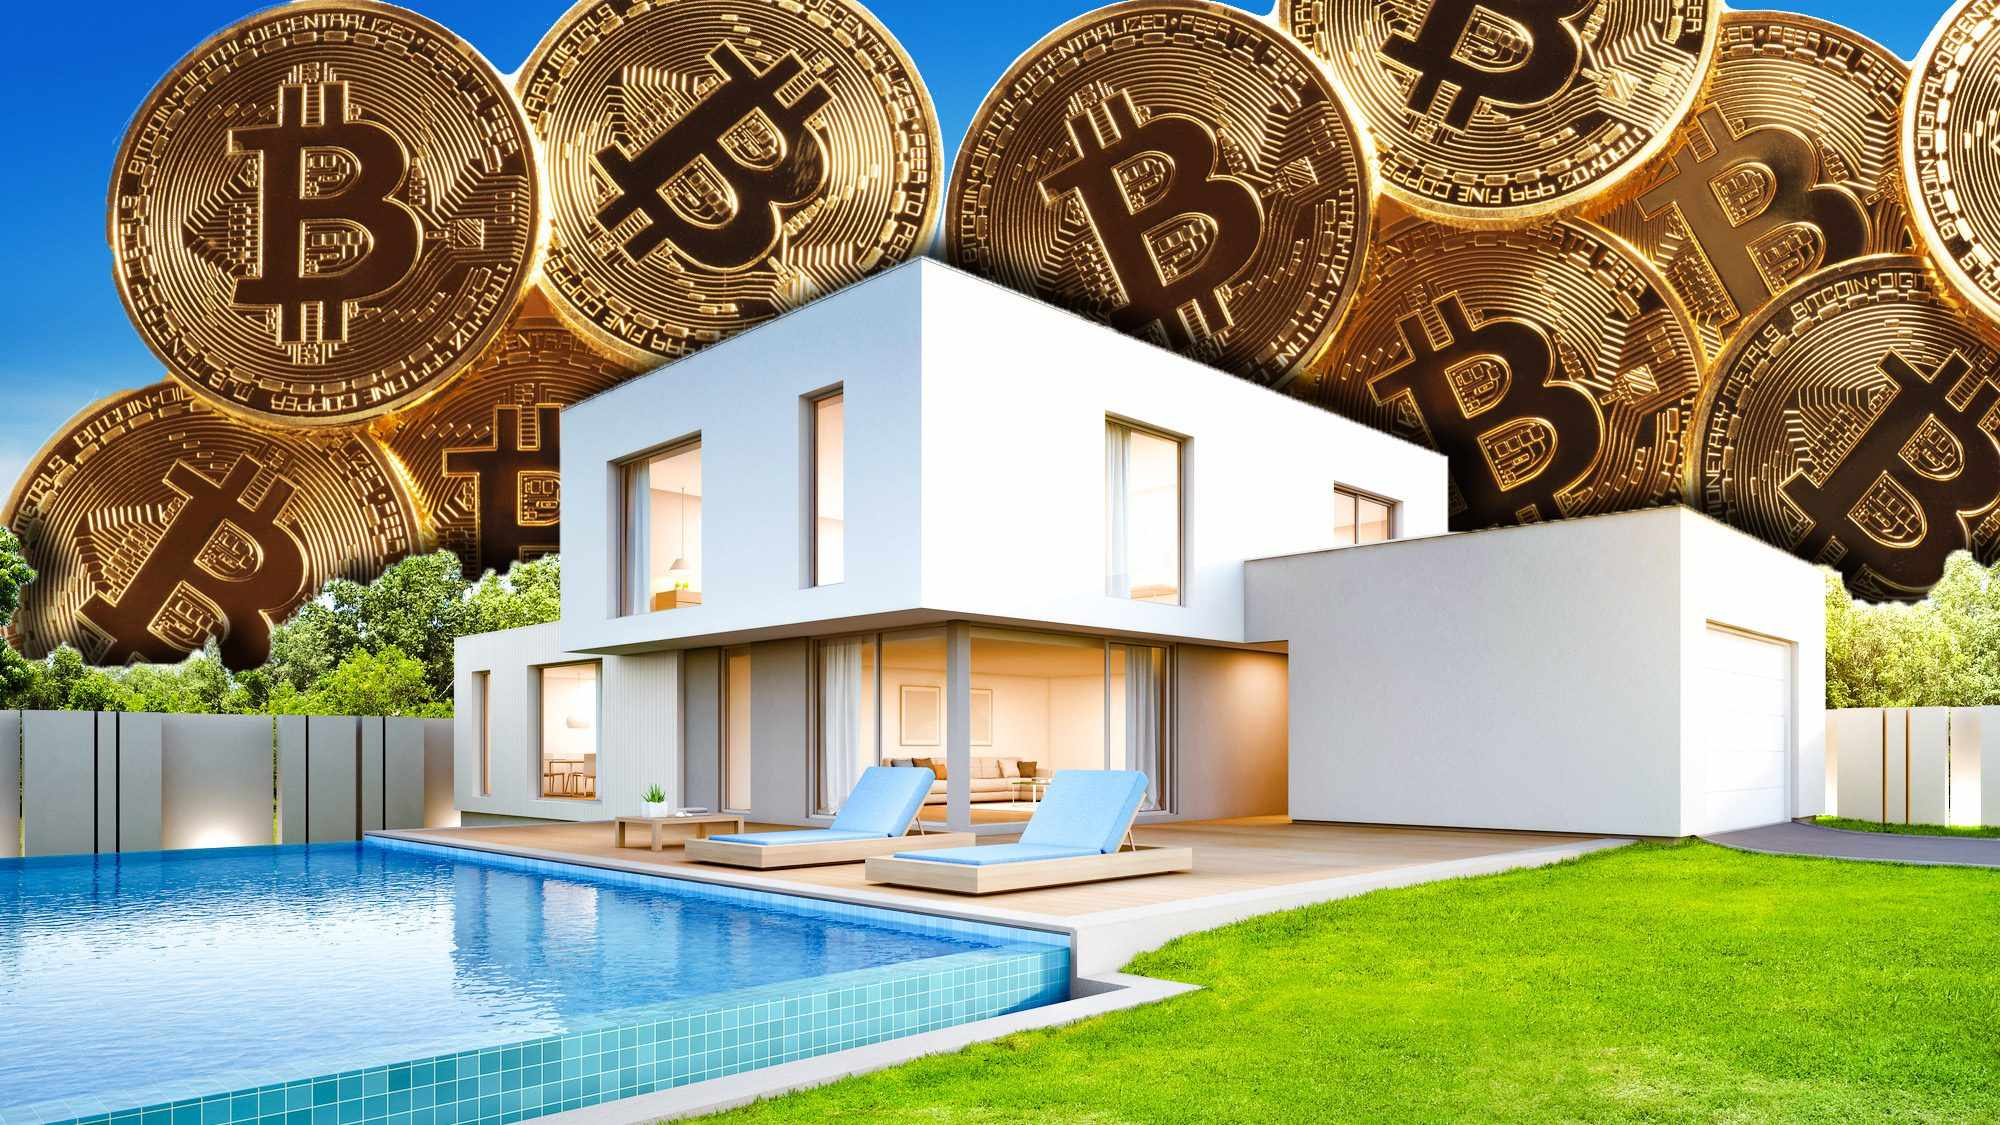 Cryptocurrency vs real estate rentals